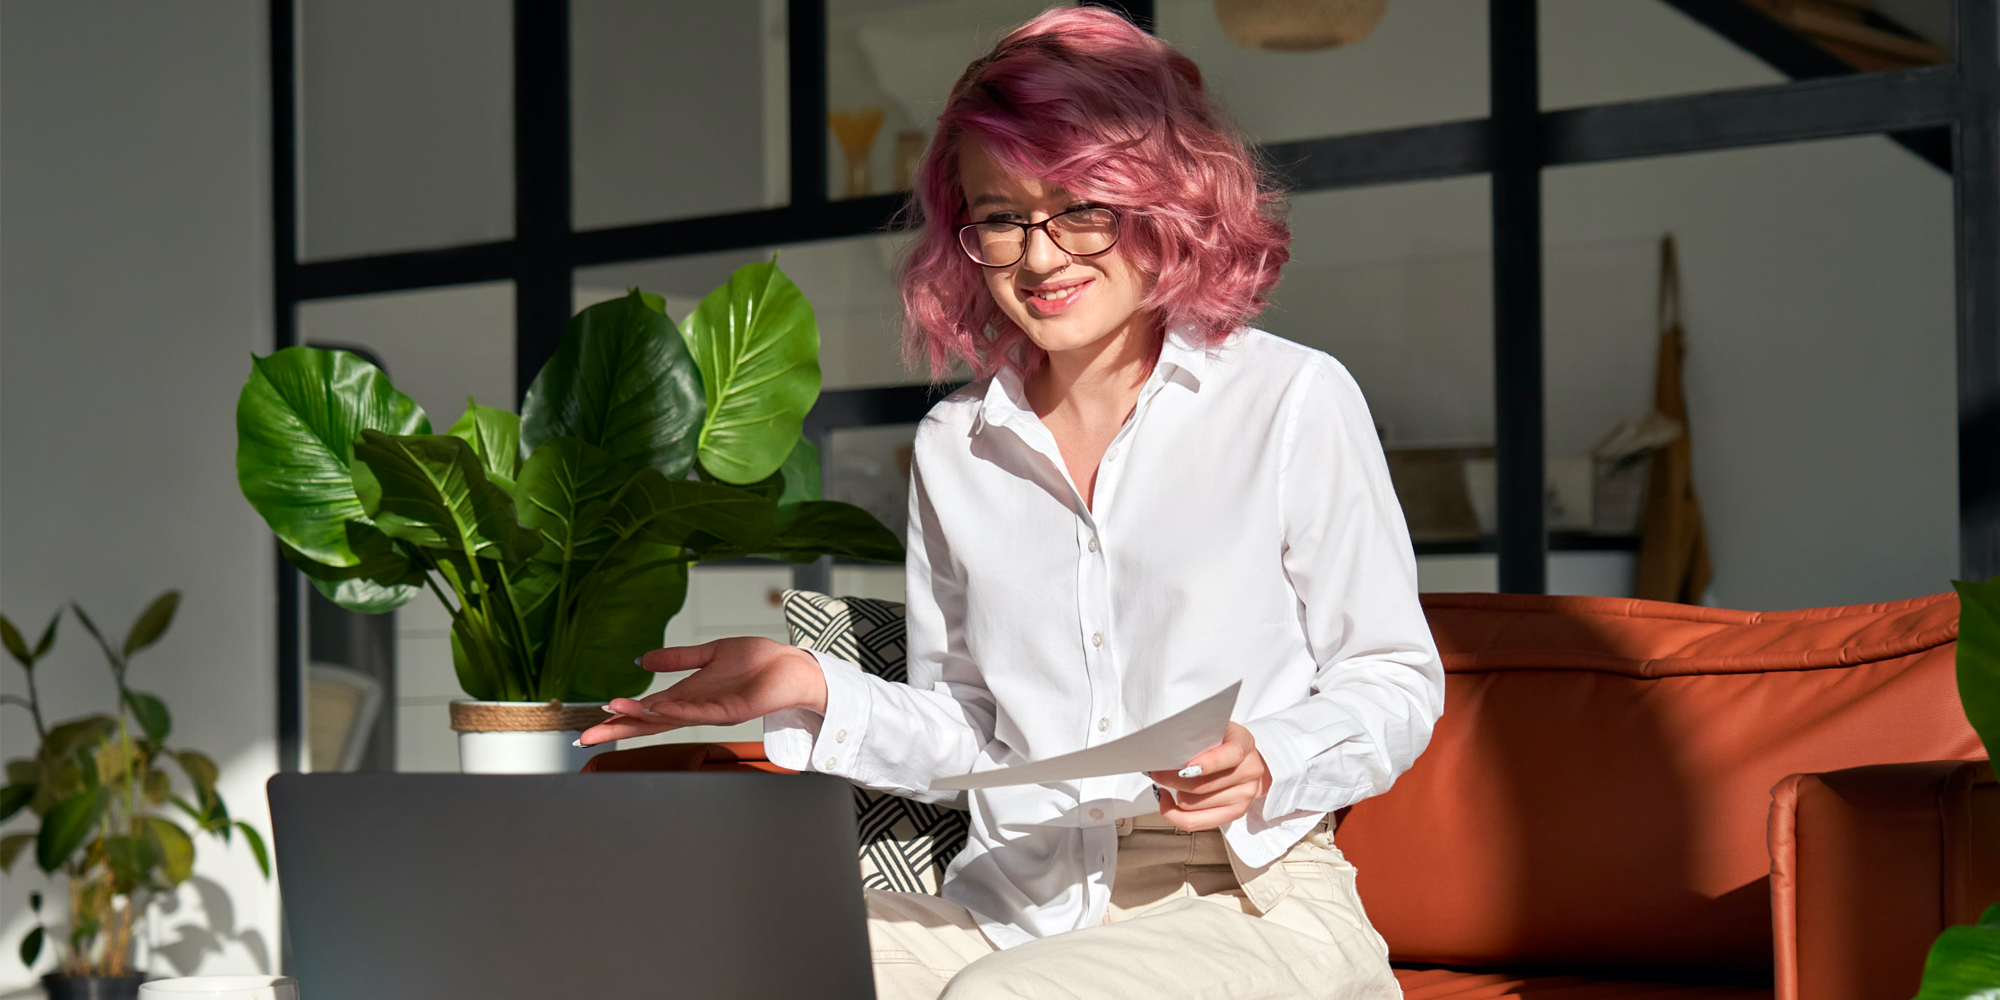 Generation Z employee uses video conferencing